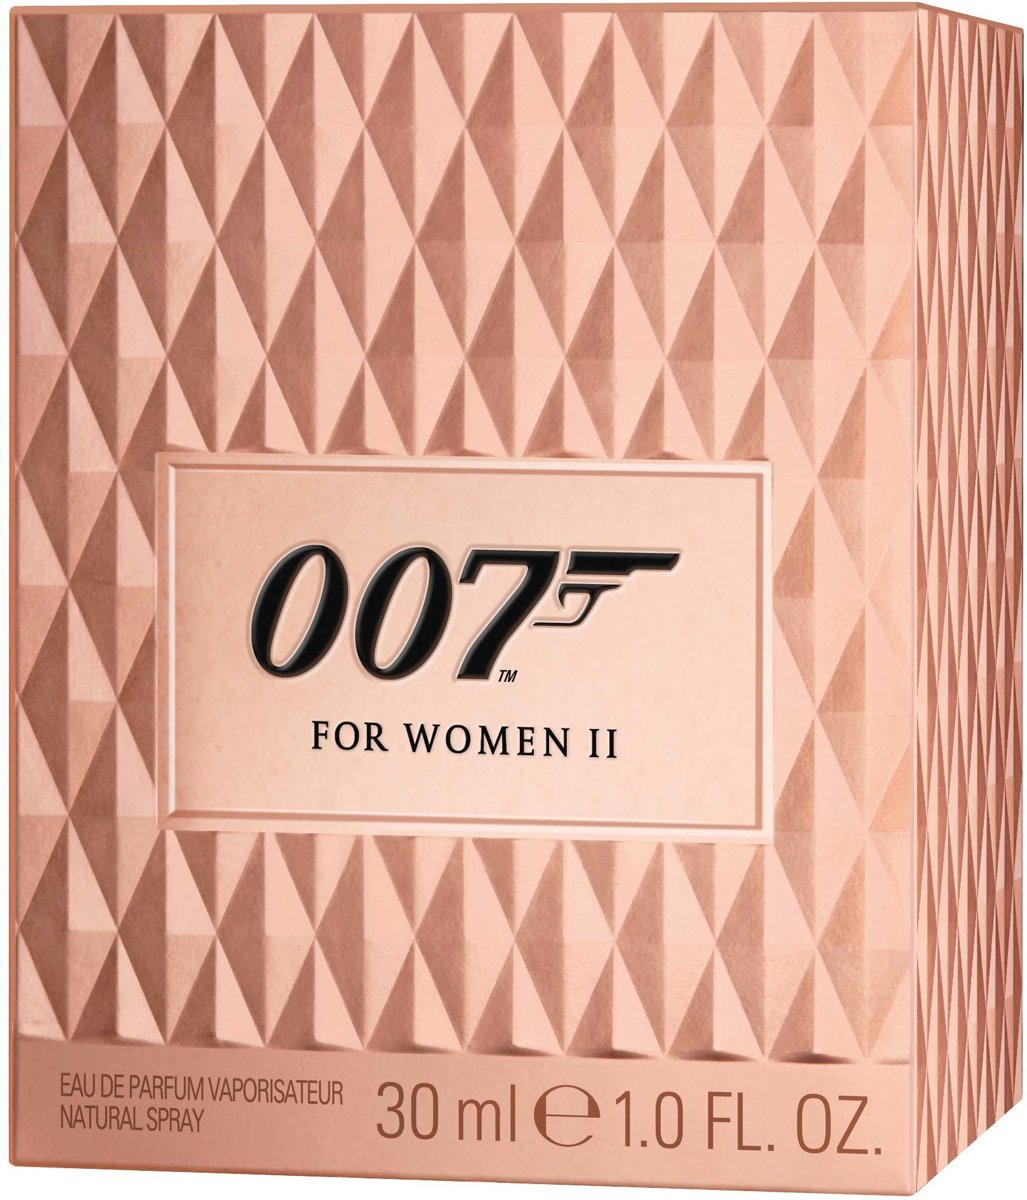 James bond woman ii edp 30 ml spray